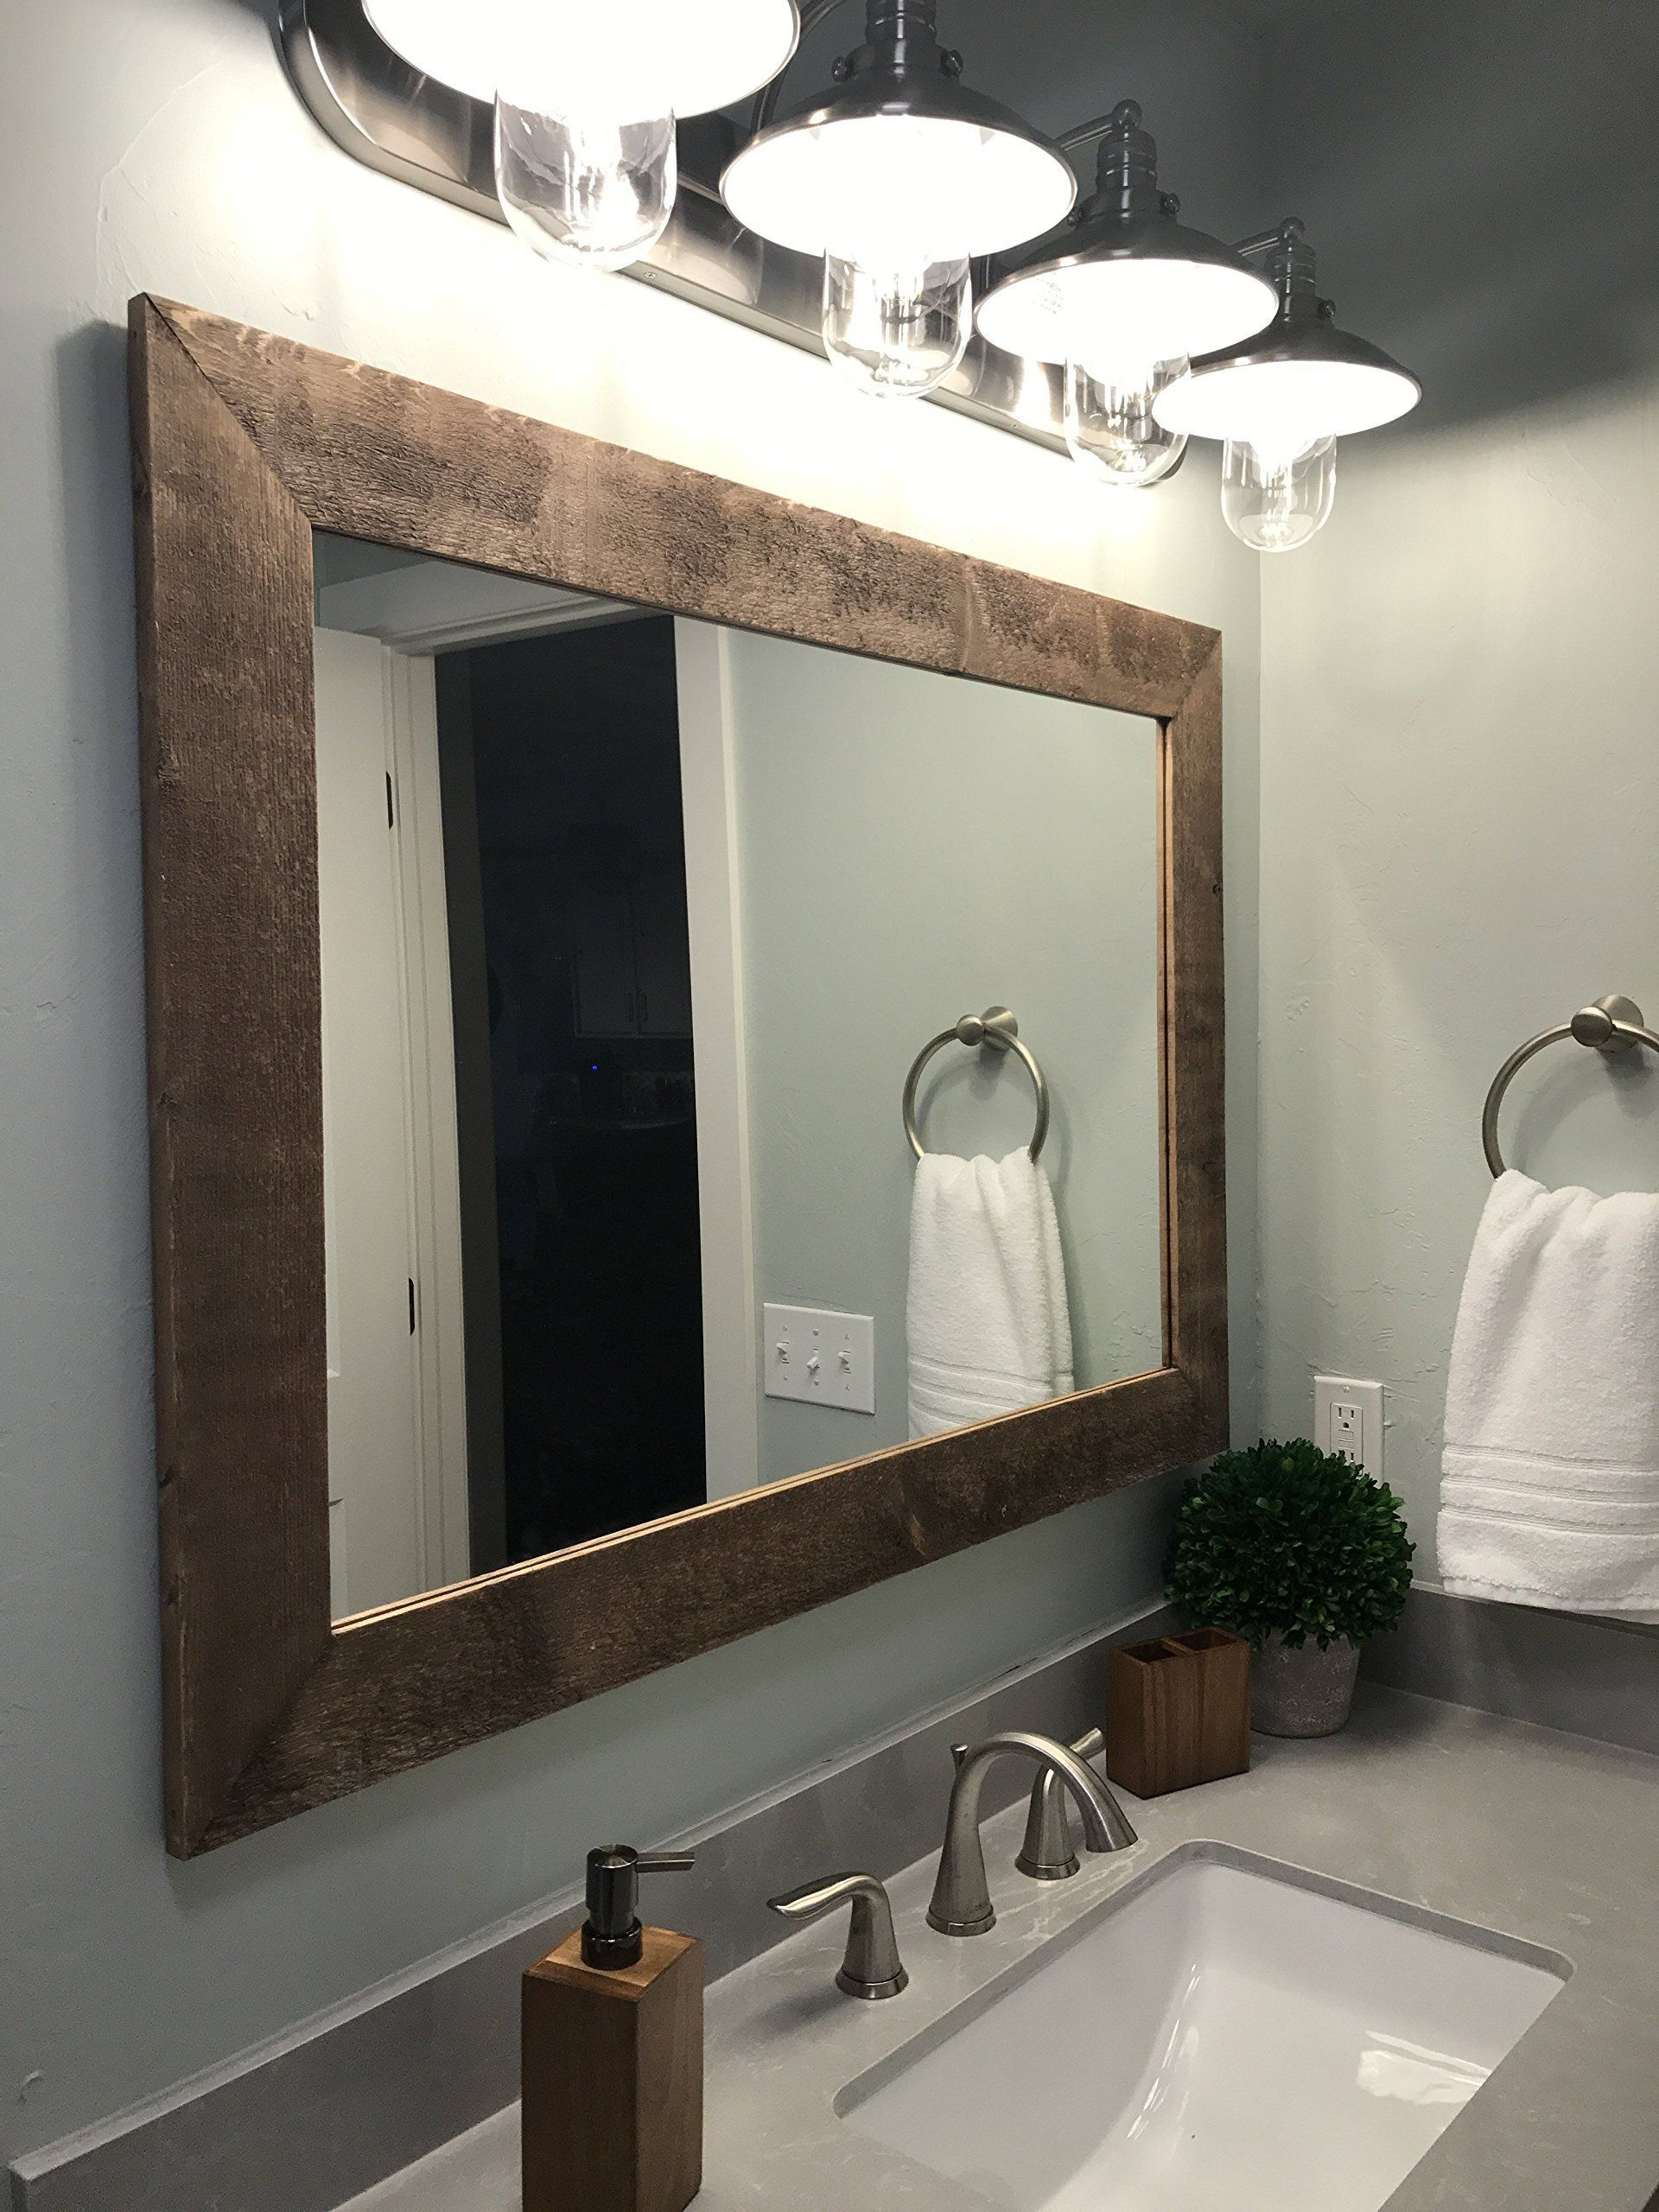 Renewed Decor Shiplap Reclaimed Wood Mirror In 20 Stain Colors Large Wall Mirror Rustic Rustic Bathroom Decor Reclaimed Wood Mirror Large Bathroom Mirrors [ 2560 x 1920 Pixel ]